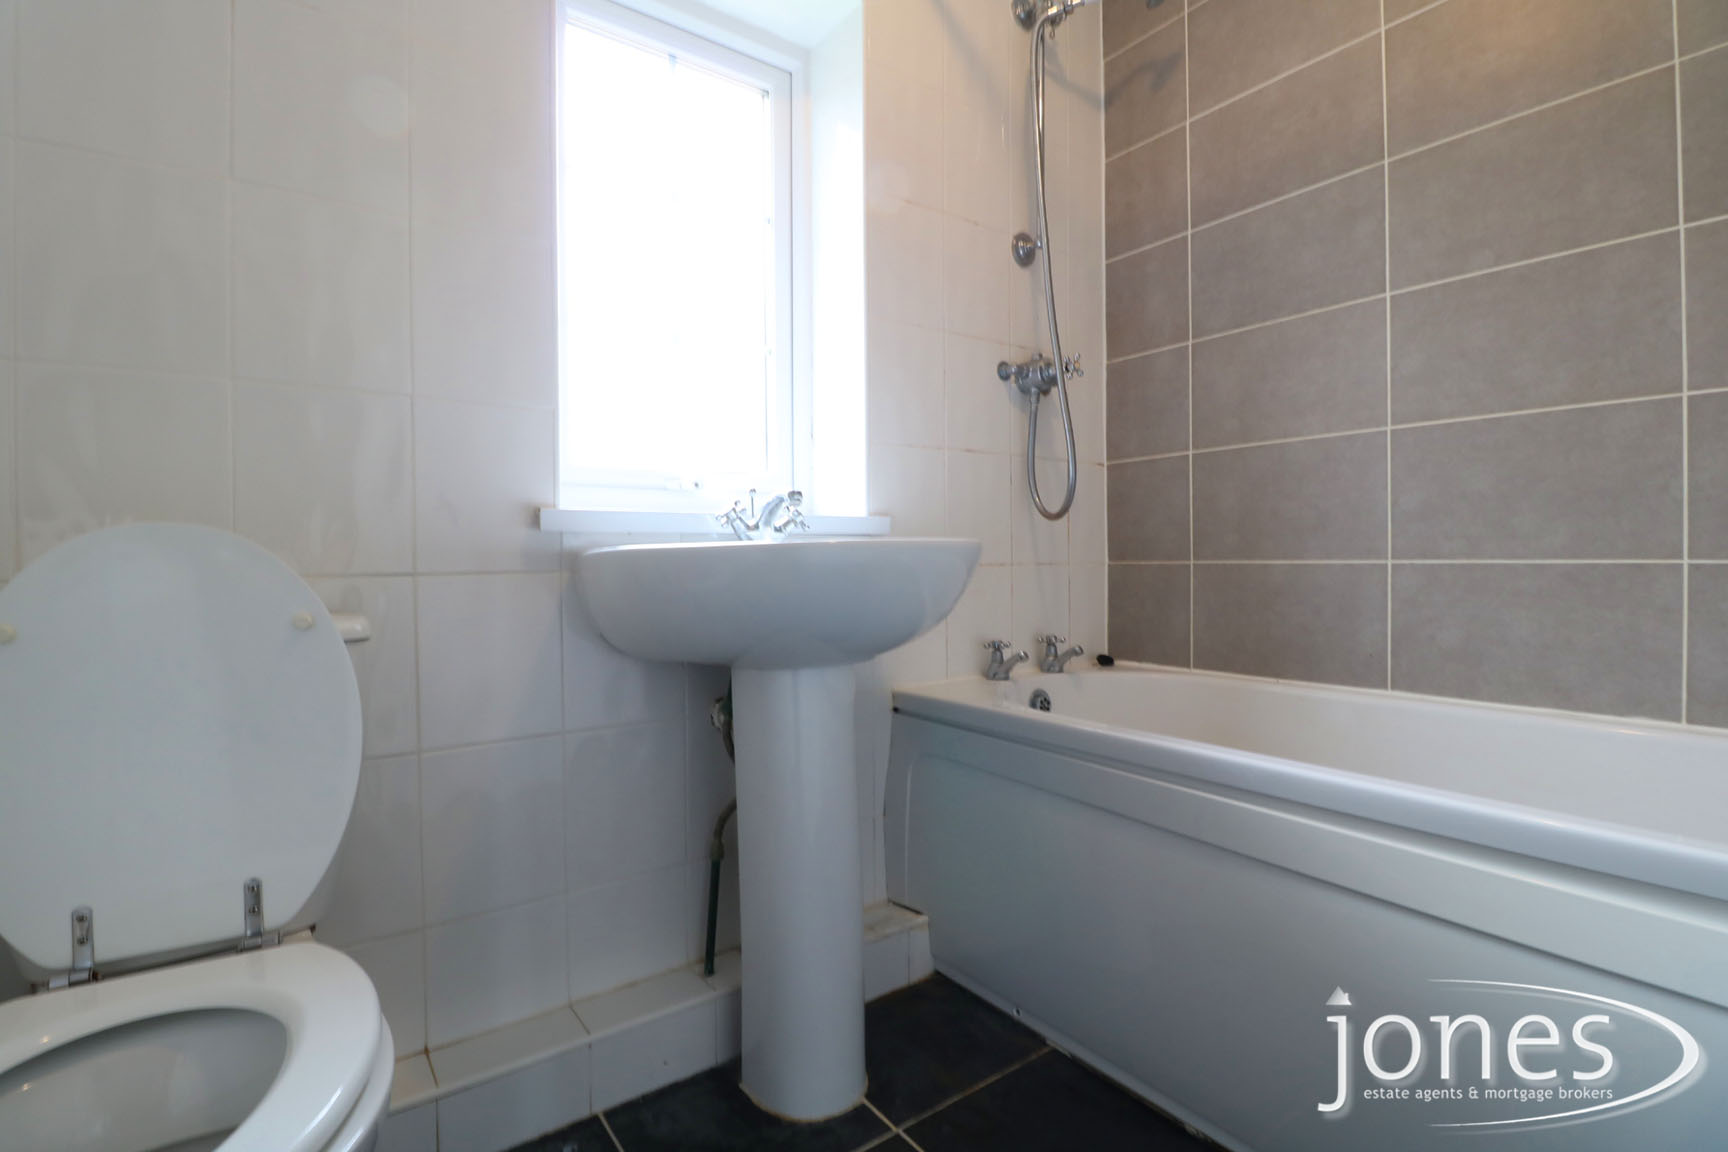 Home for Sale Let - Photo 08 Keats Road, Normanby, Middlesbrough, TS6 0RP